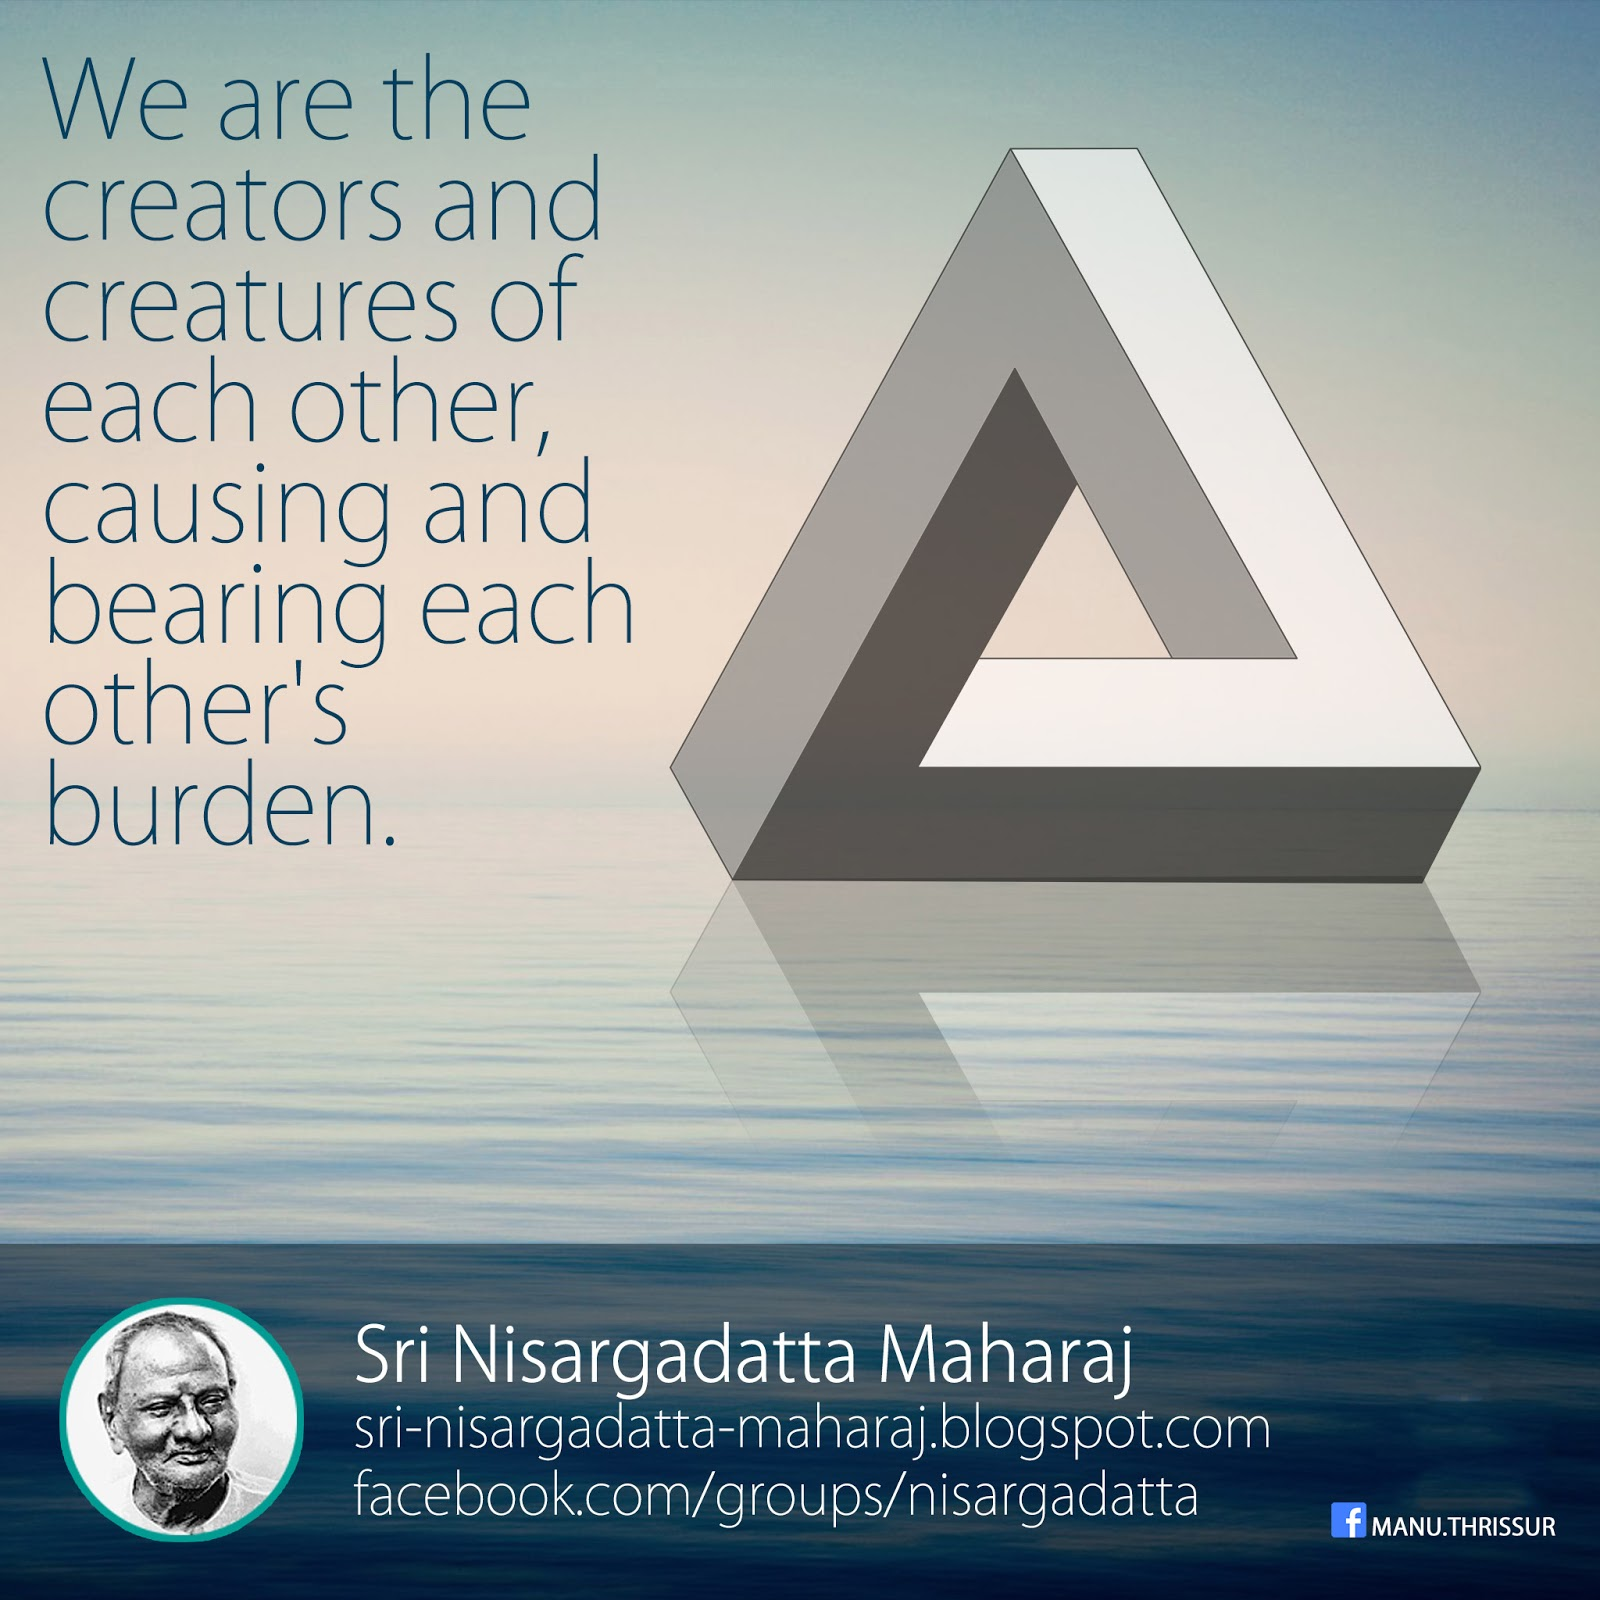 We are the creators and creatures of each other